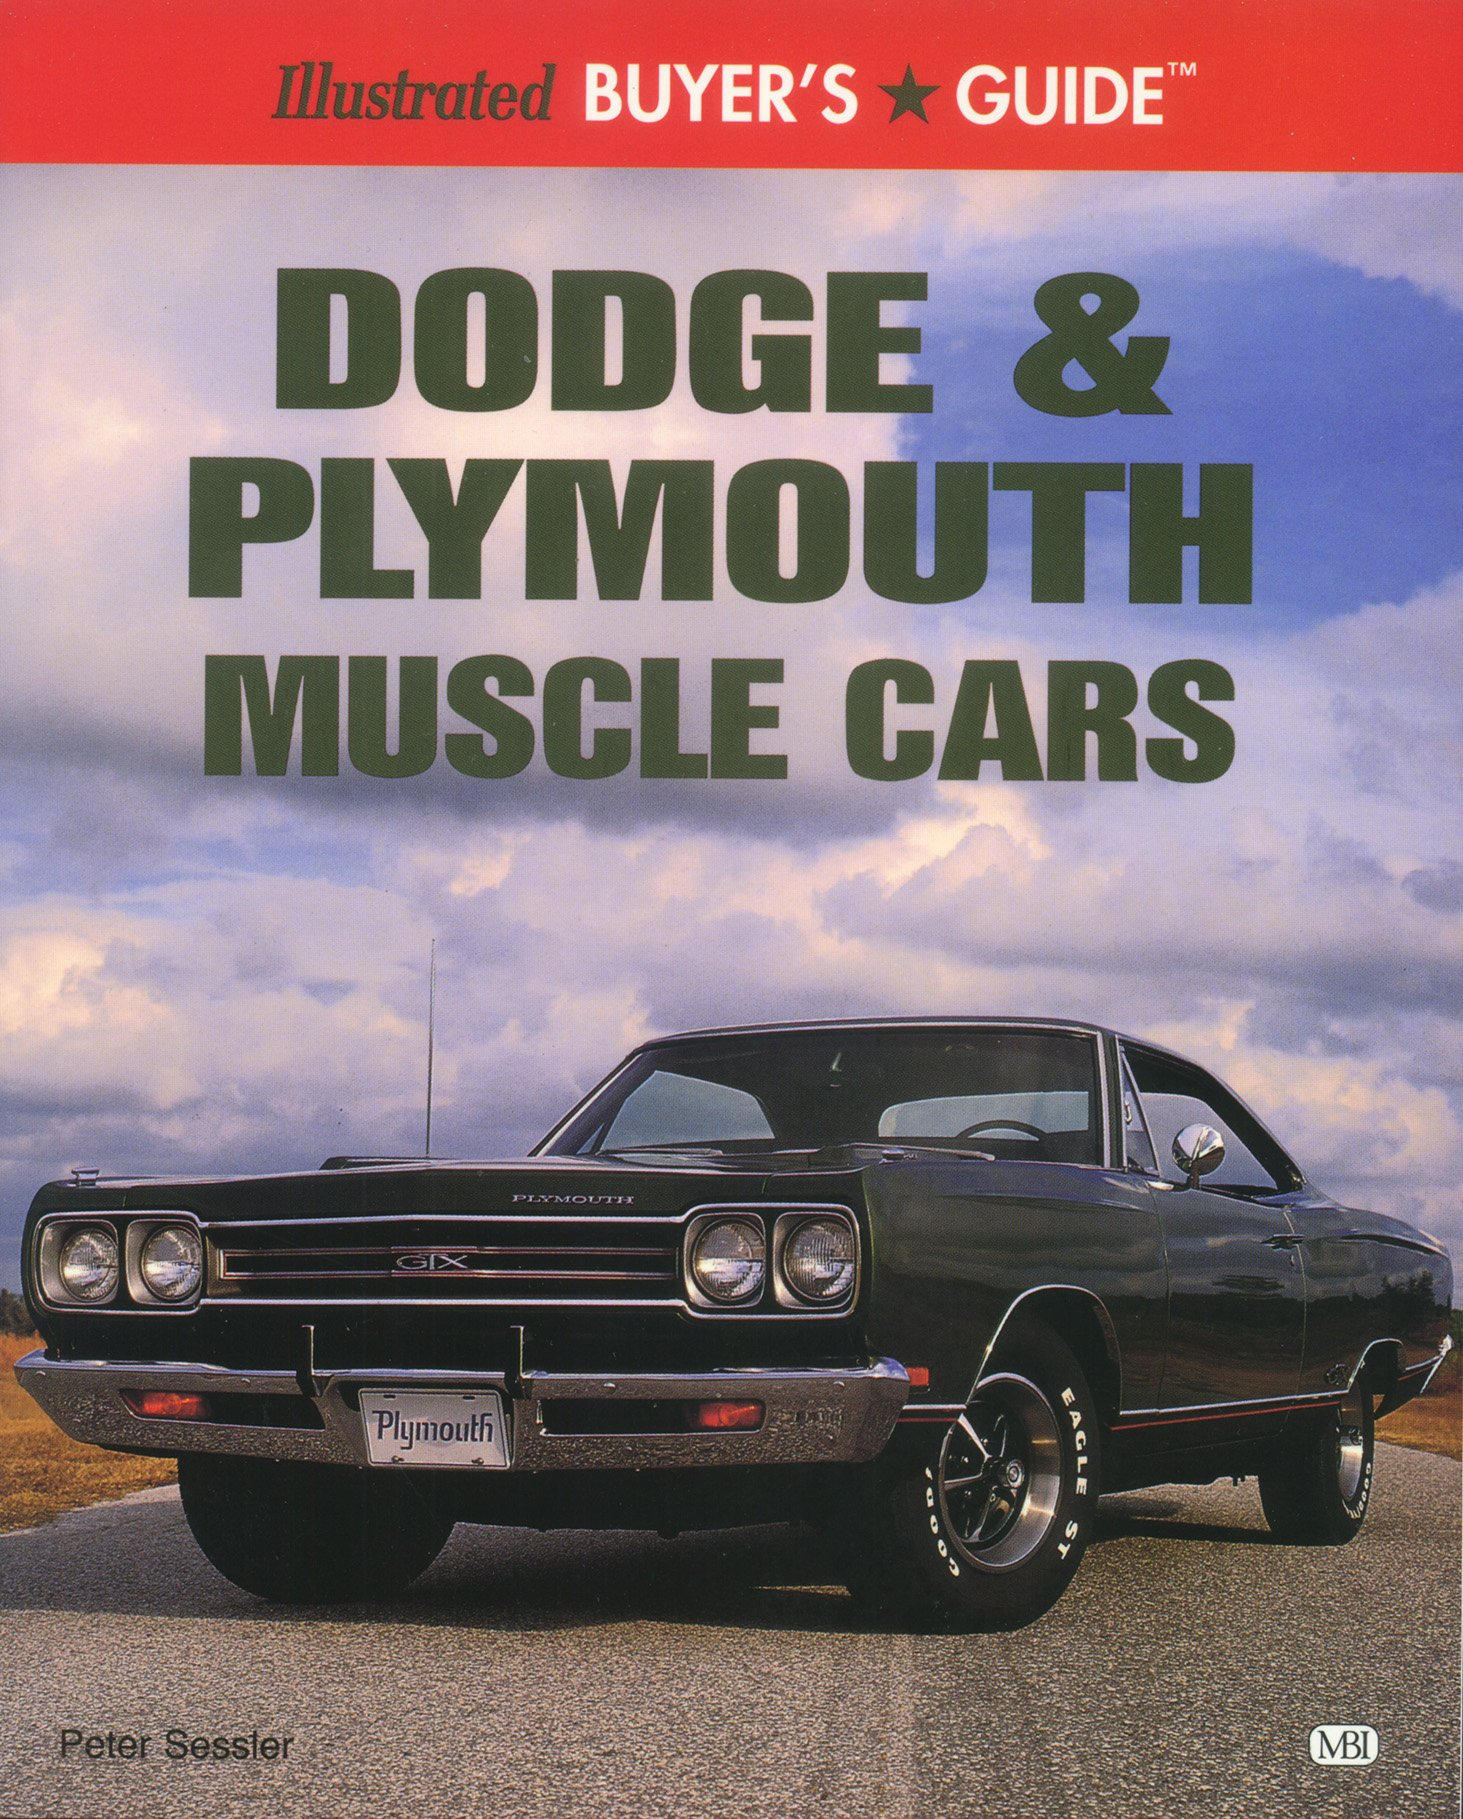 Illustrated Dodge & Plymouth Muscle Car: Buyers Guide (Illustrated Buyer's  Guide): Peter Sessler: 9780879389758: Amazon.com: Books